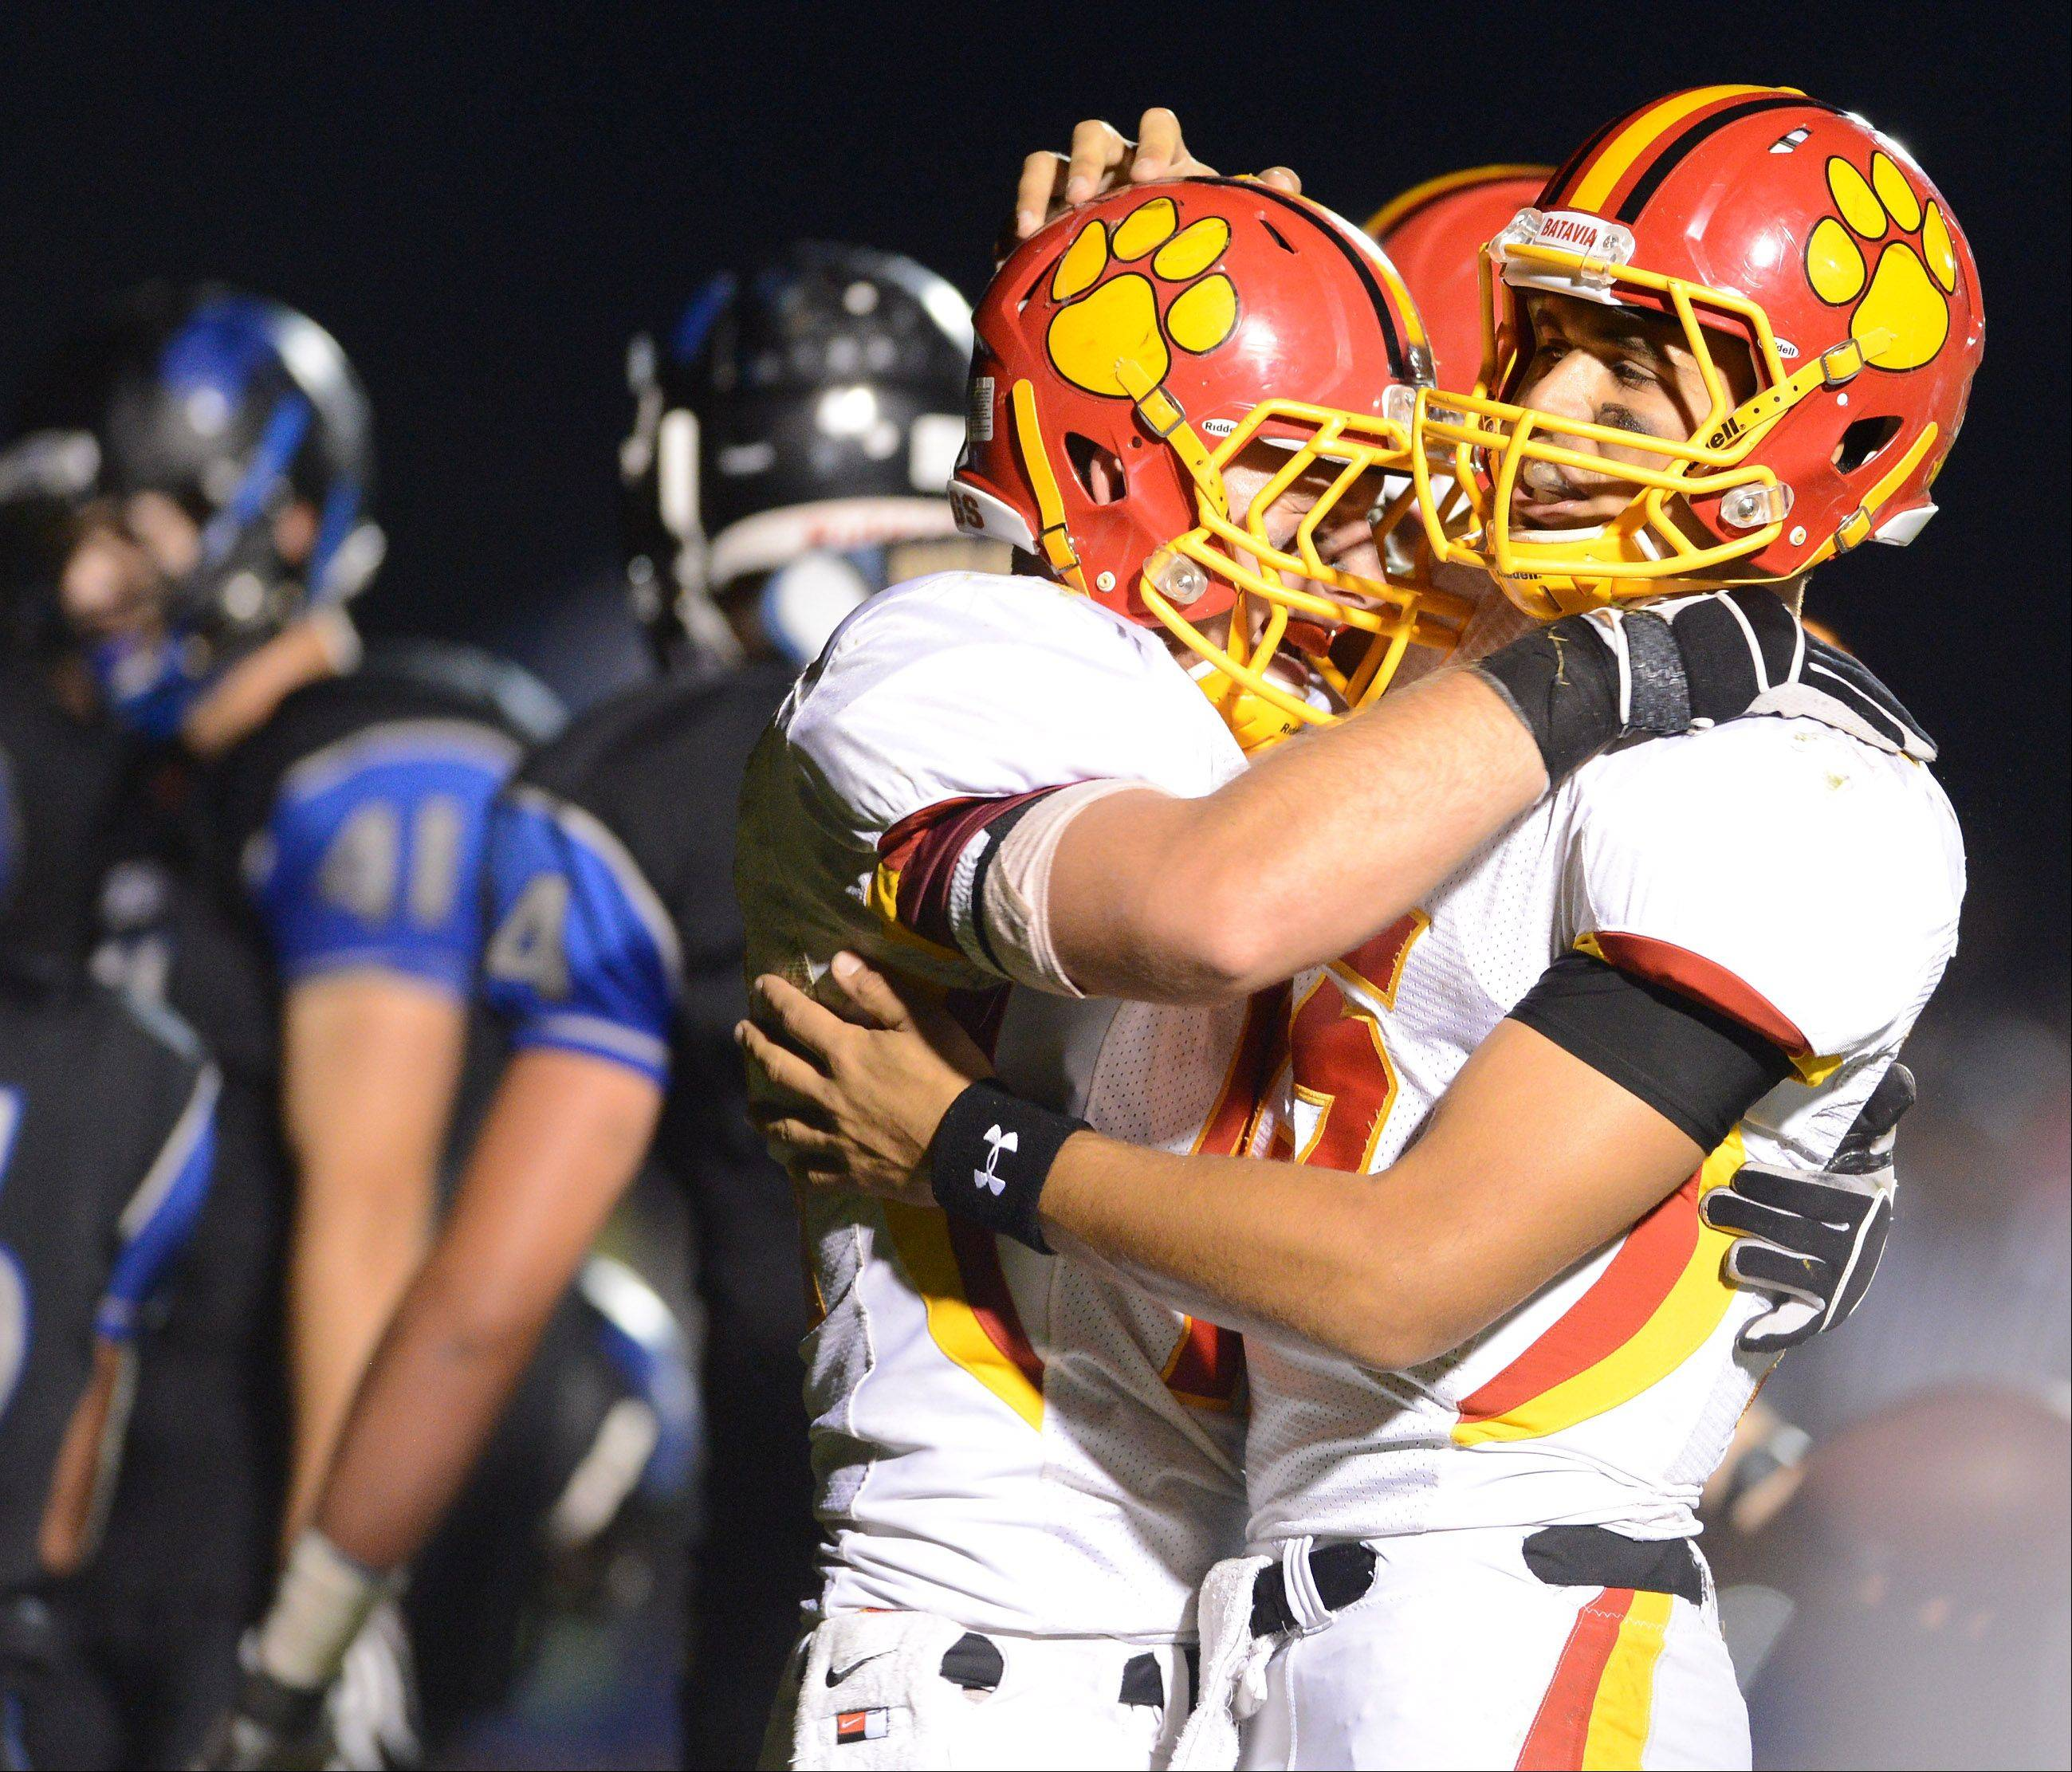 Batavia quarterback Micah Coffey congratulates Kevin Green after his touchdown reception.